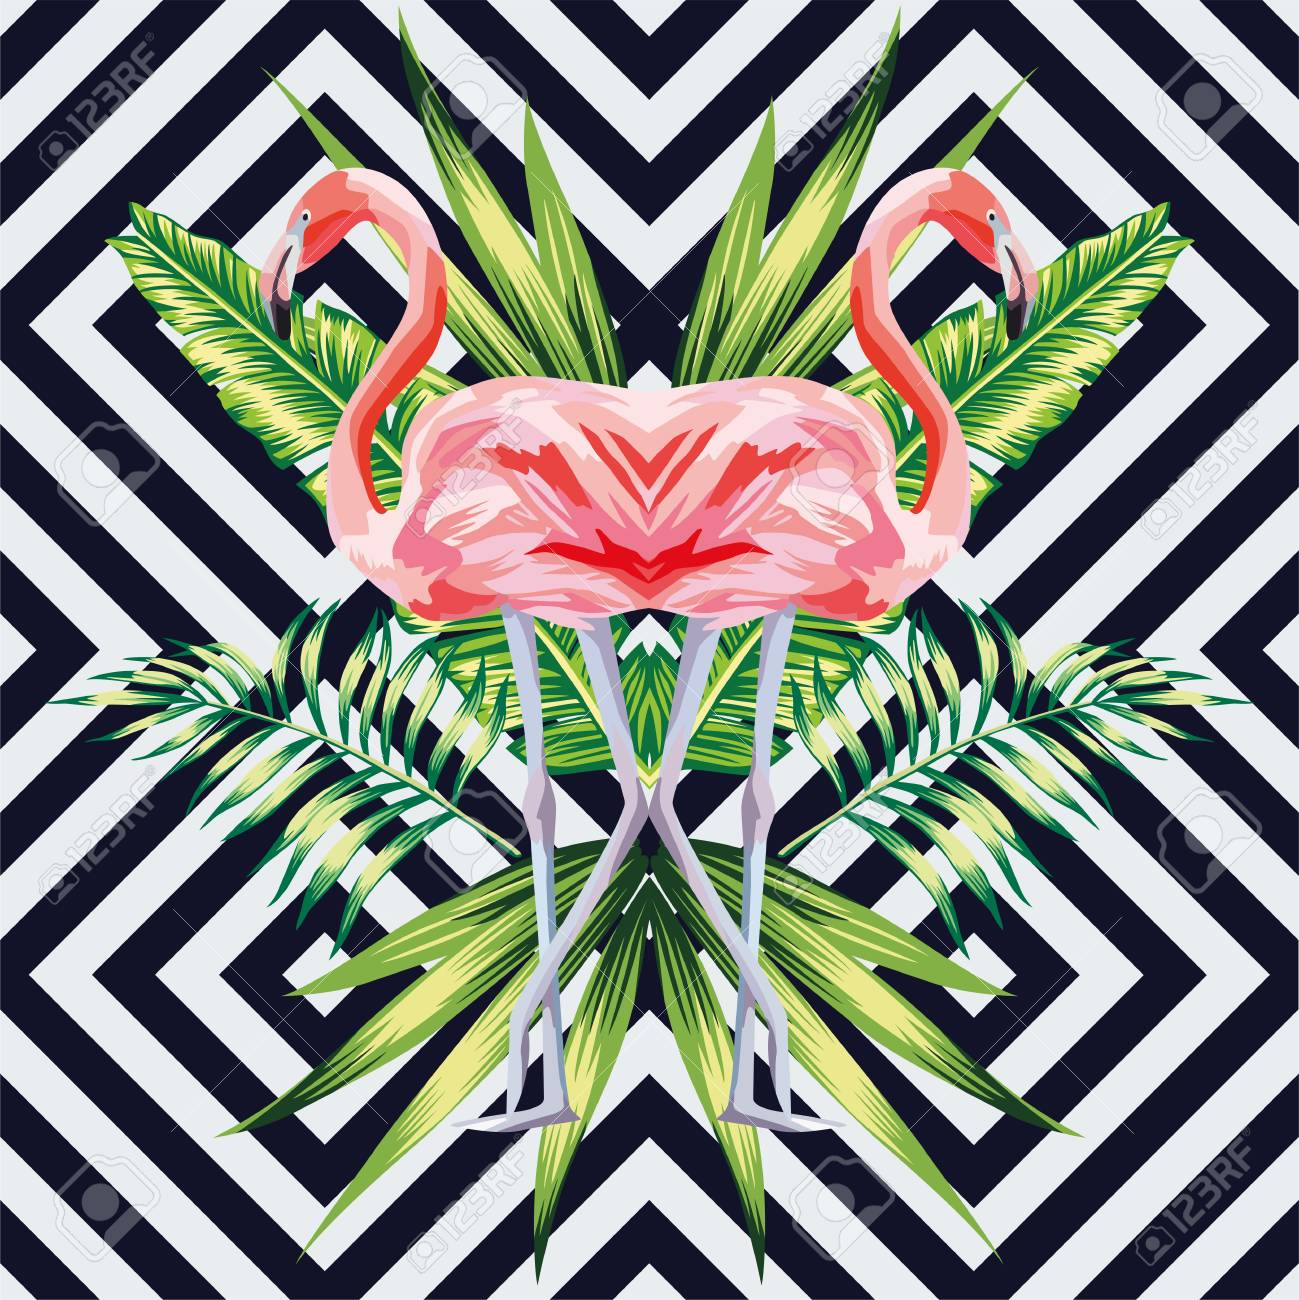 bird pink flamingo with tropical banana leaves in mirror image style on geometric background. jungle floral wallpaper - 122038576